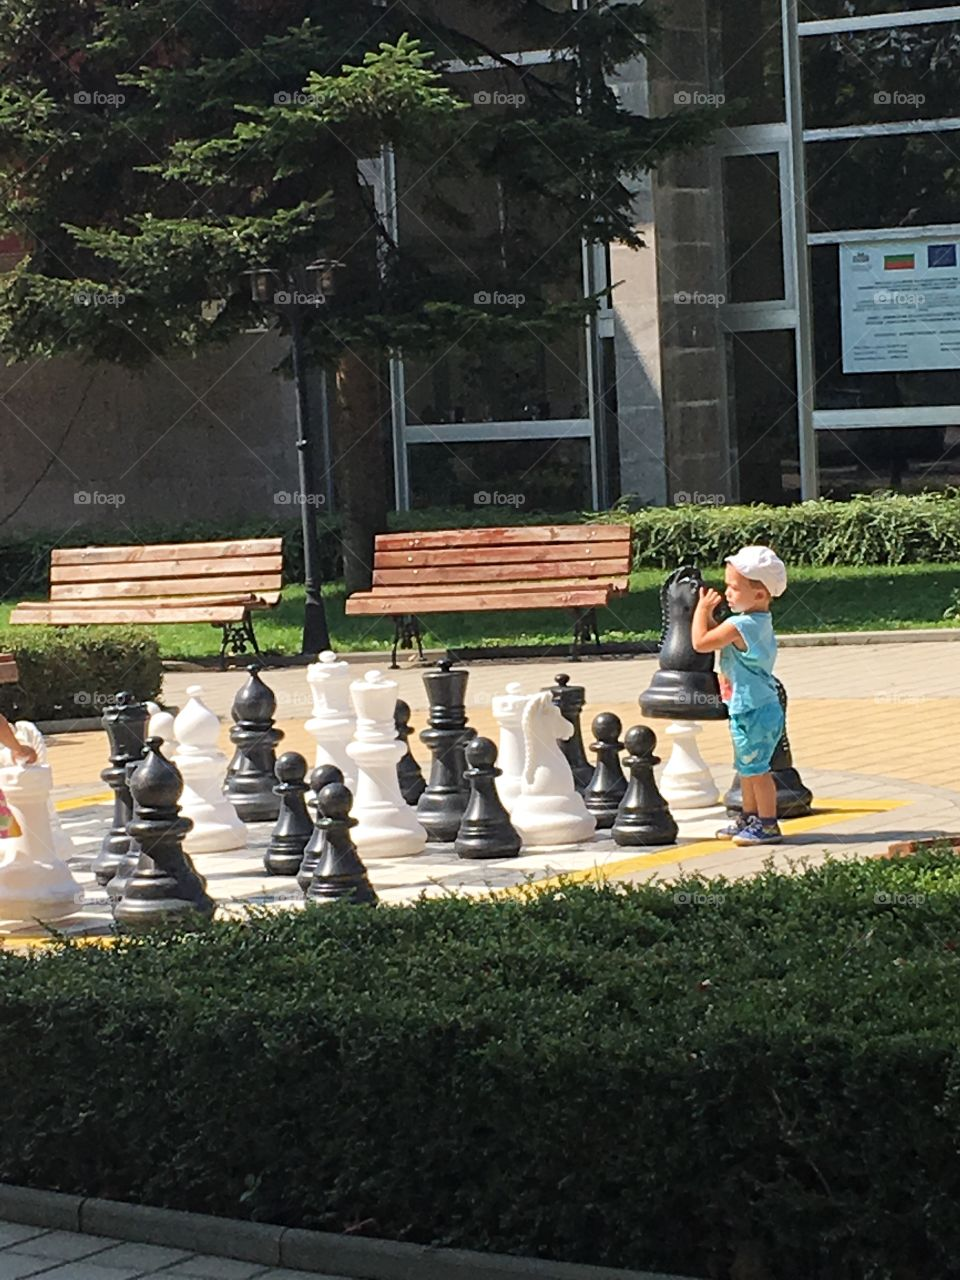 Child playing with chess players on chess board